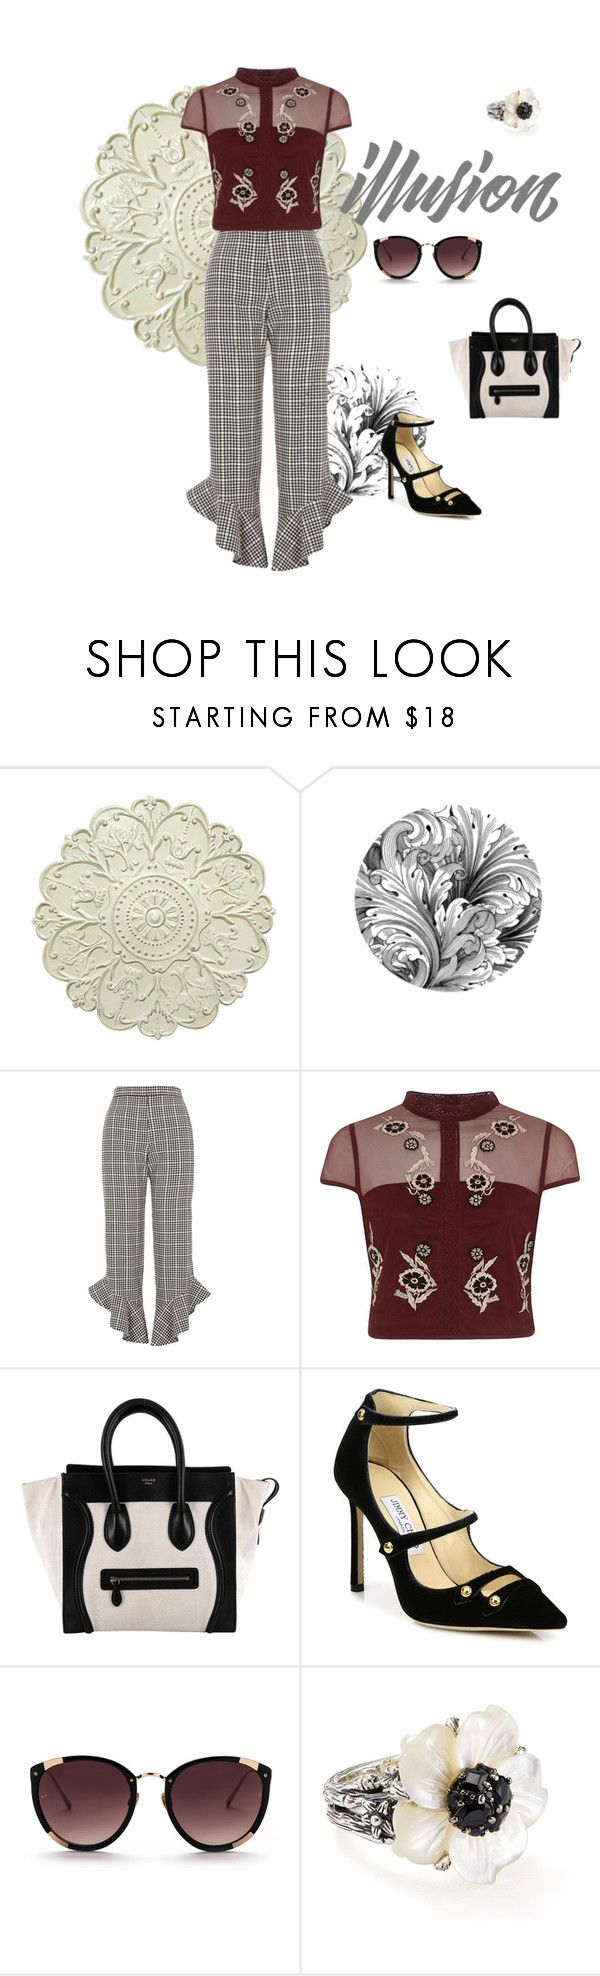 """""""Untitled #718"""" by aschwing ❤ liked on Polyvore featuring River Island, CÉLINE, Jimmy Choo and Stephen Dweck"""